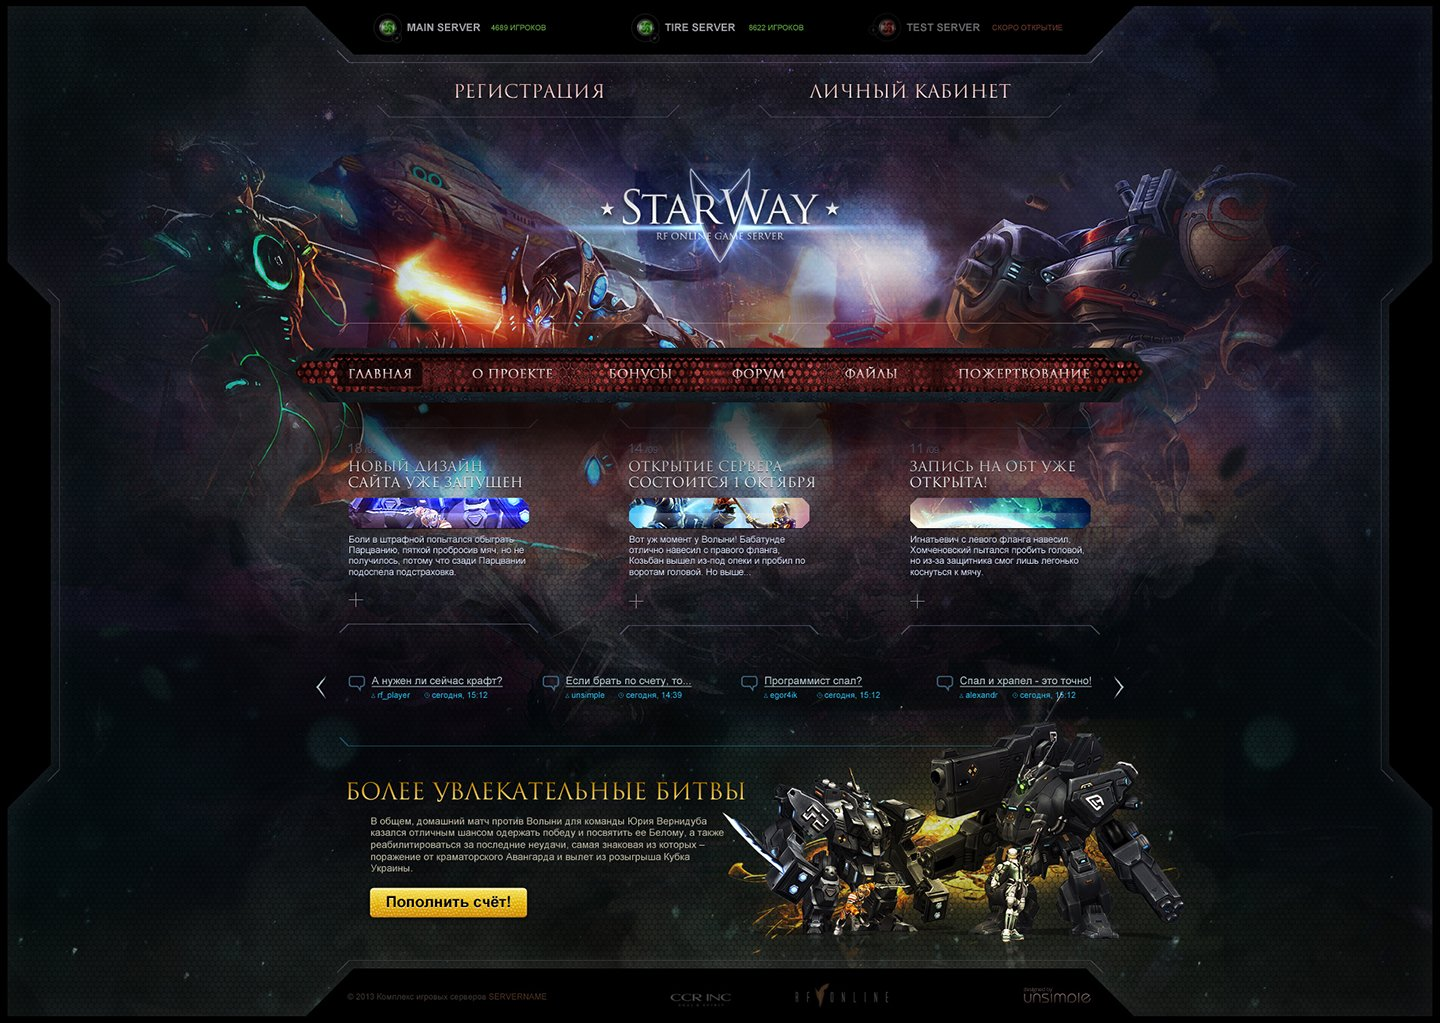 Starway > Website for private server Rising Force Online. Main page